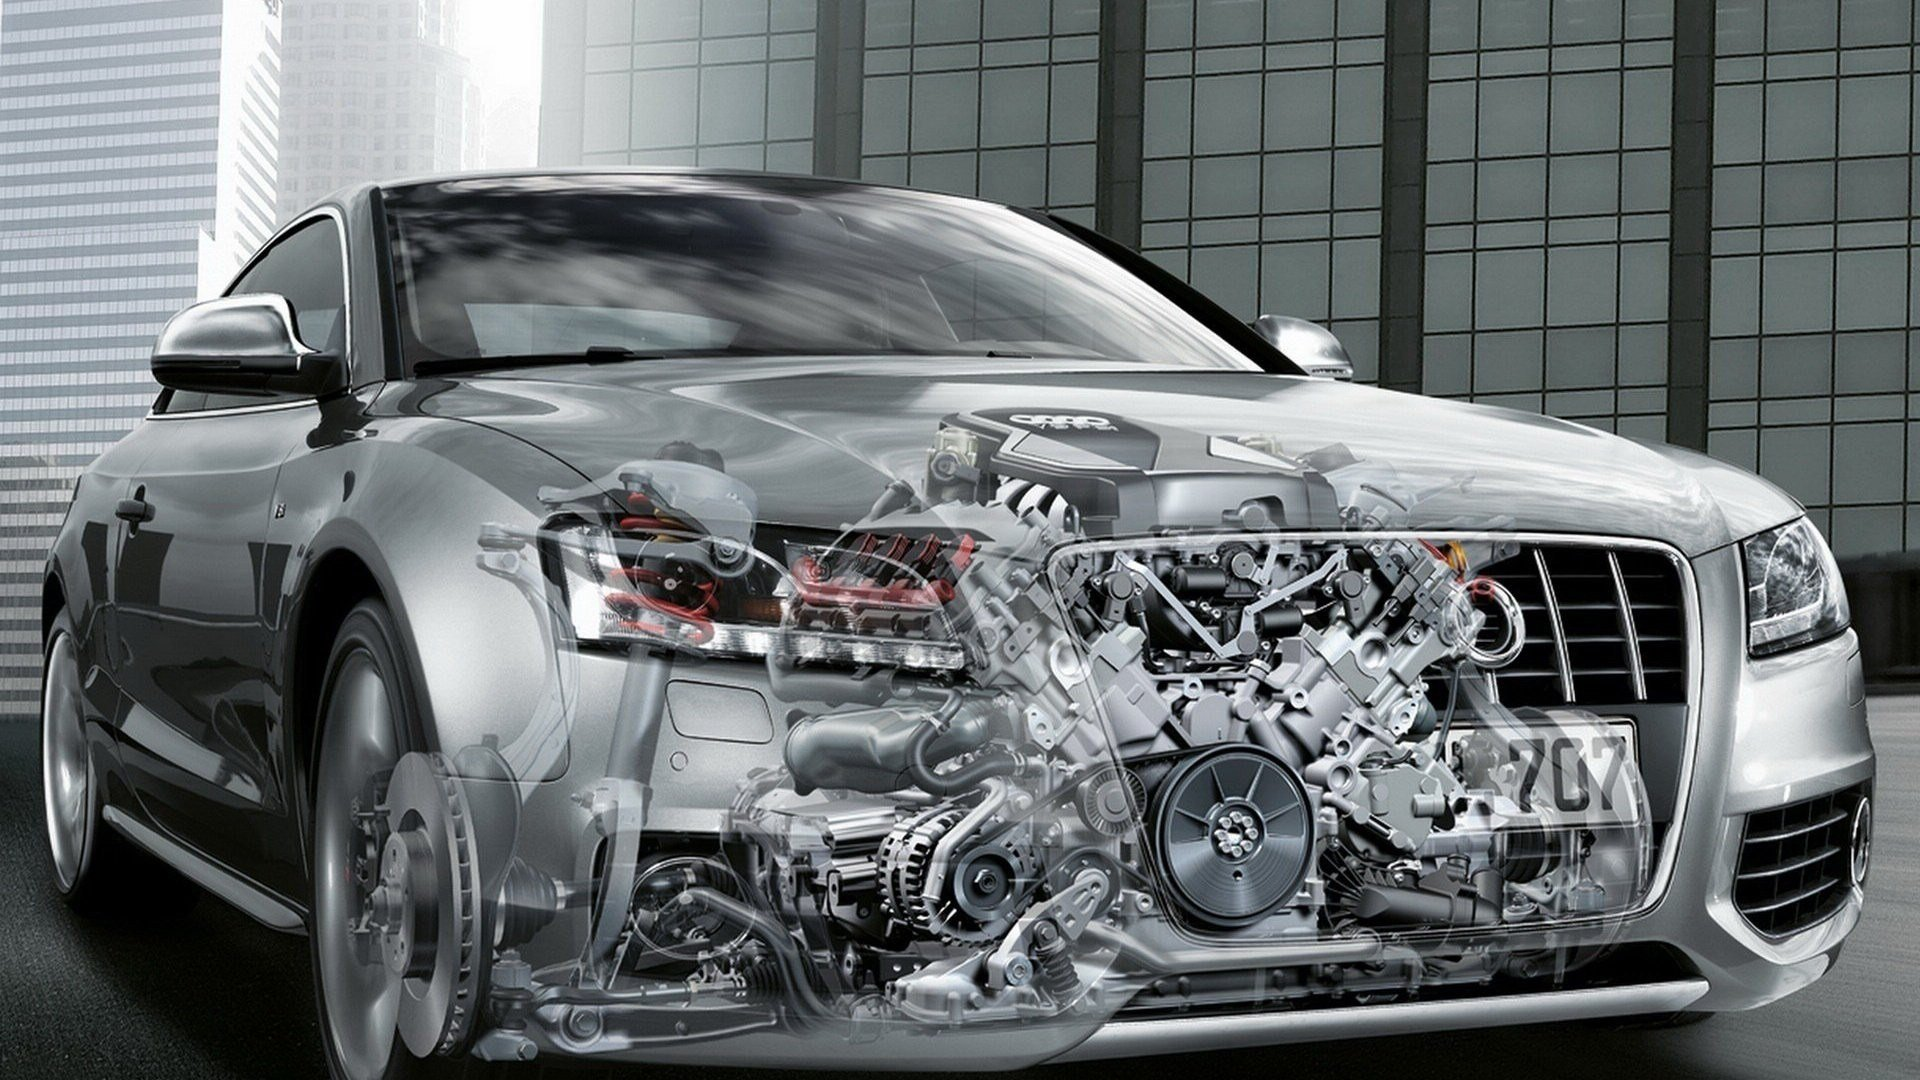 Latest 40 Hd Engine Wallpapers Engine Backgrounds Engine Free Download